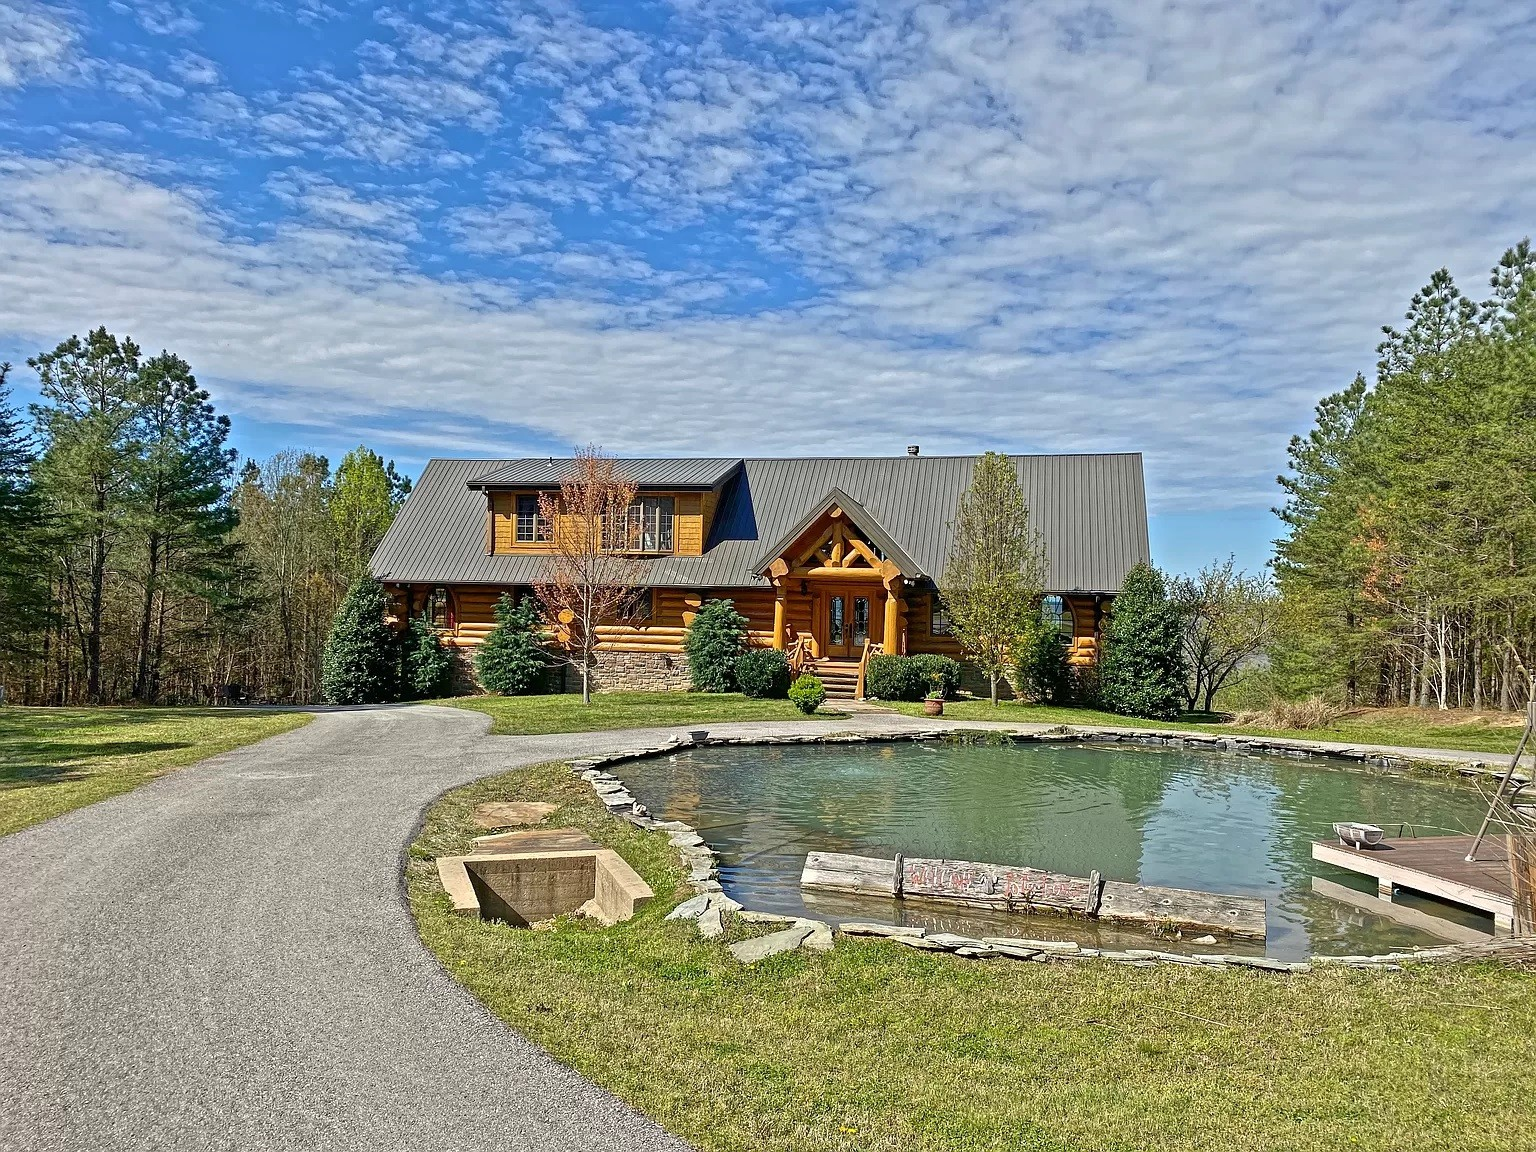 Absolutely stunning cabin home with a view!!  This log cabin offers the privacy of your own home with the magnificent views of your dream vacation home. Potential for great investment. Fall Creek Falls, Cumberland Caverns, and Rock Island State Park within 25 minutes.